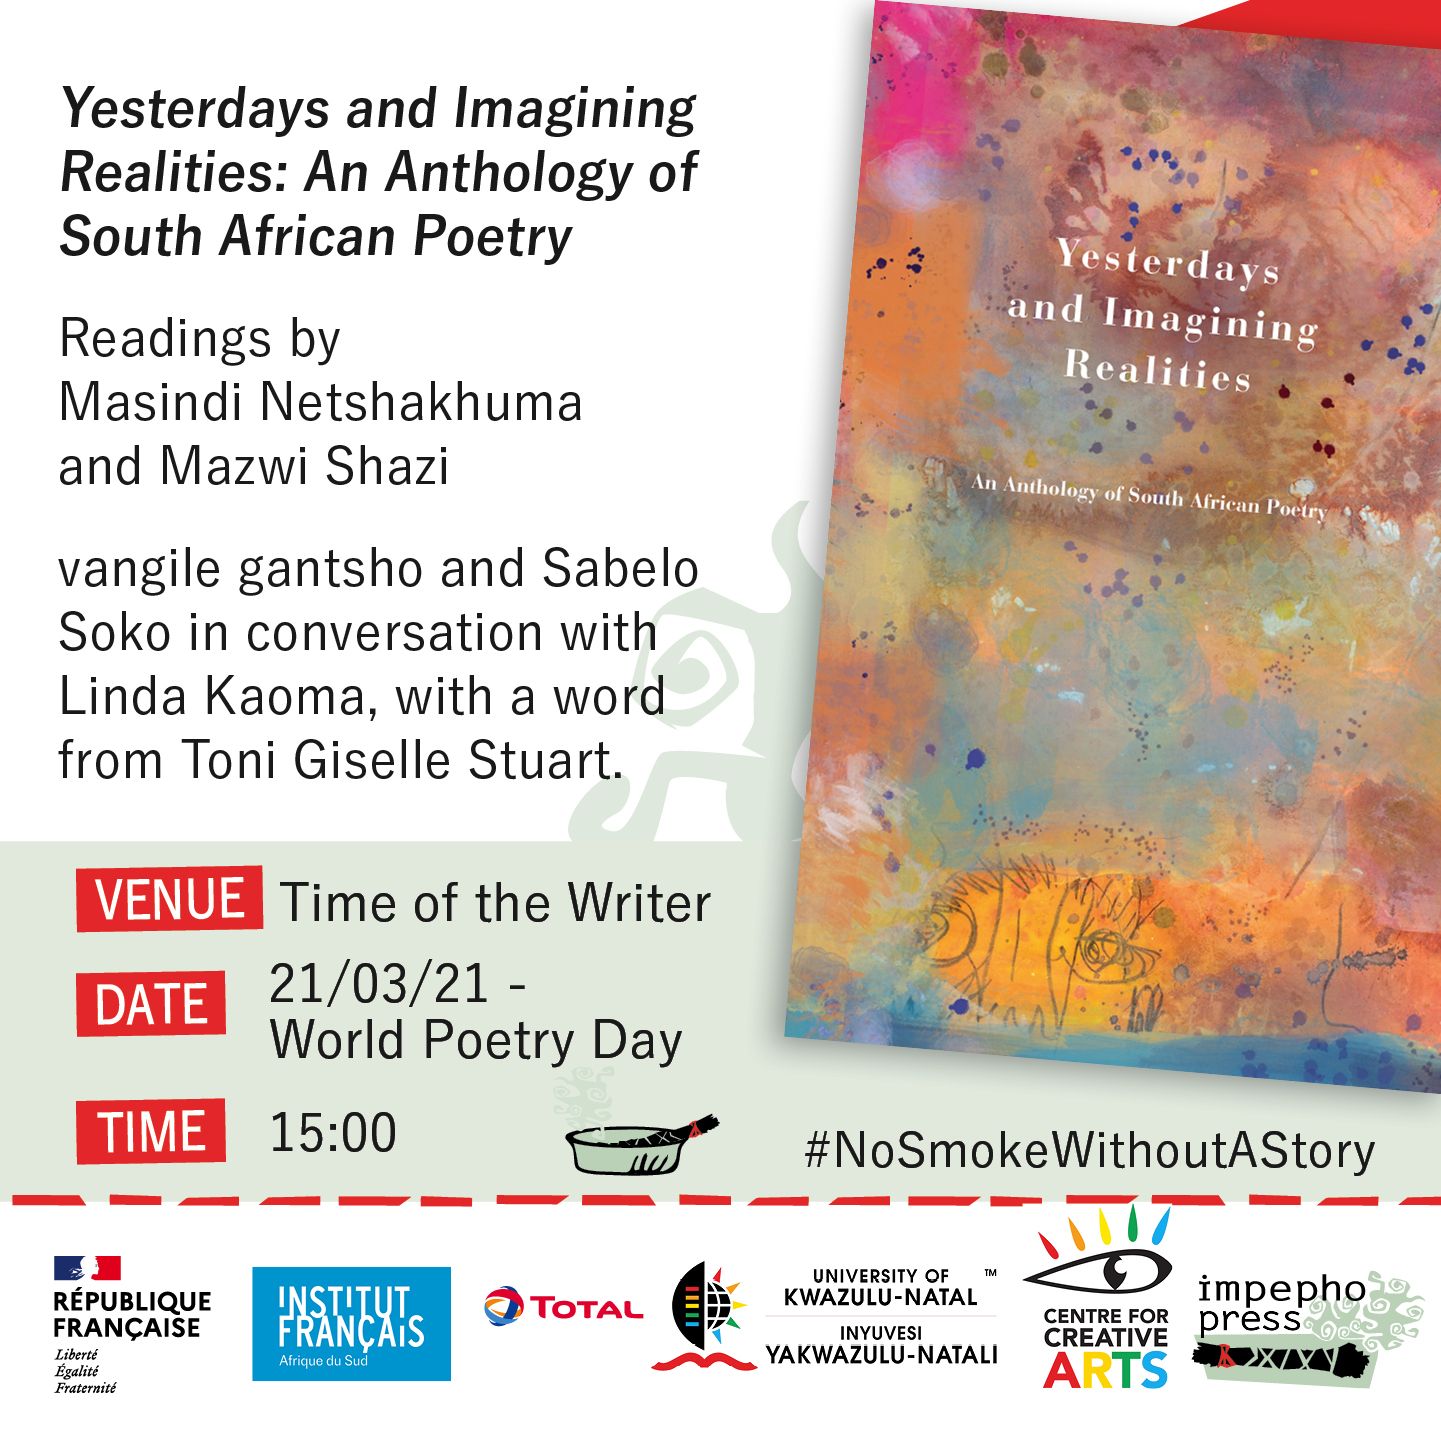 Launch instagram poster for impepho press title 2021 - Yesterdays and Imagining Realities: An Anthology of South African Poetry